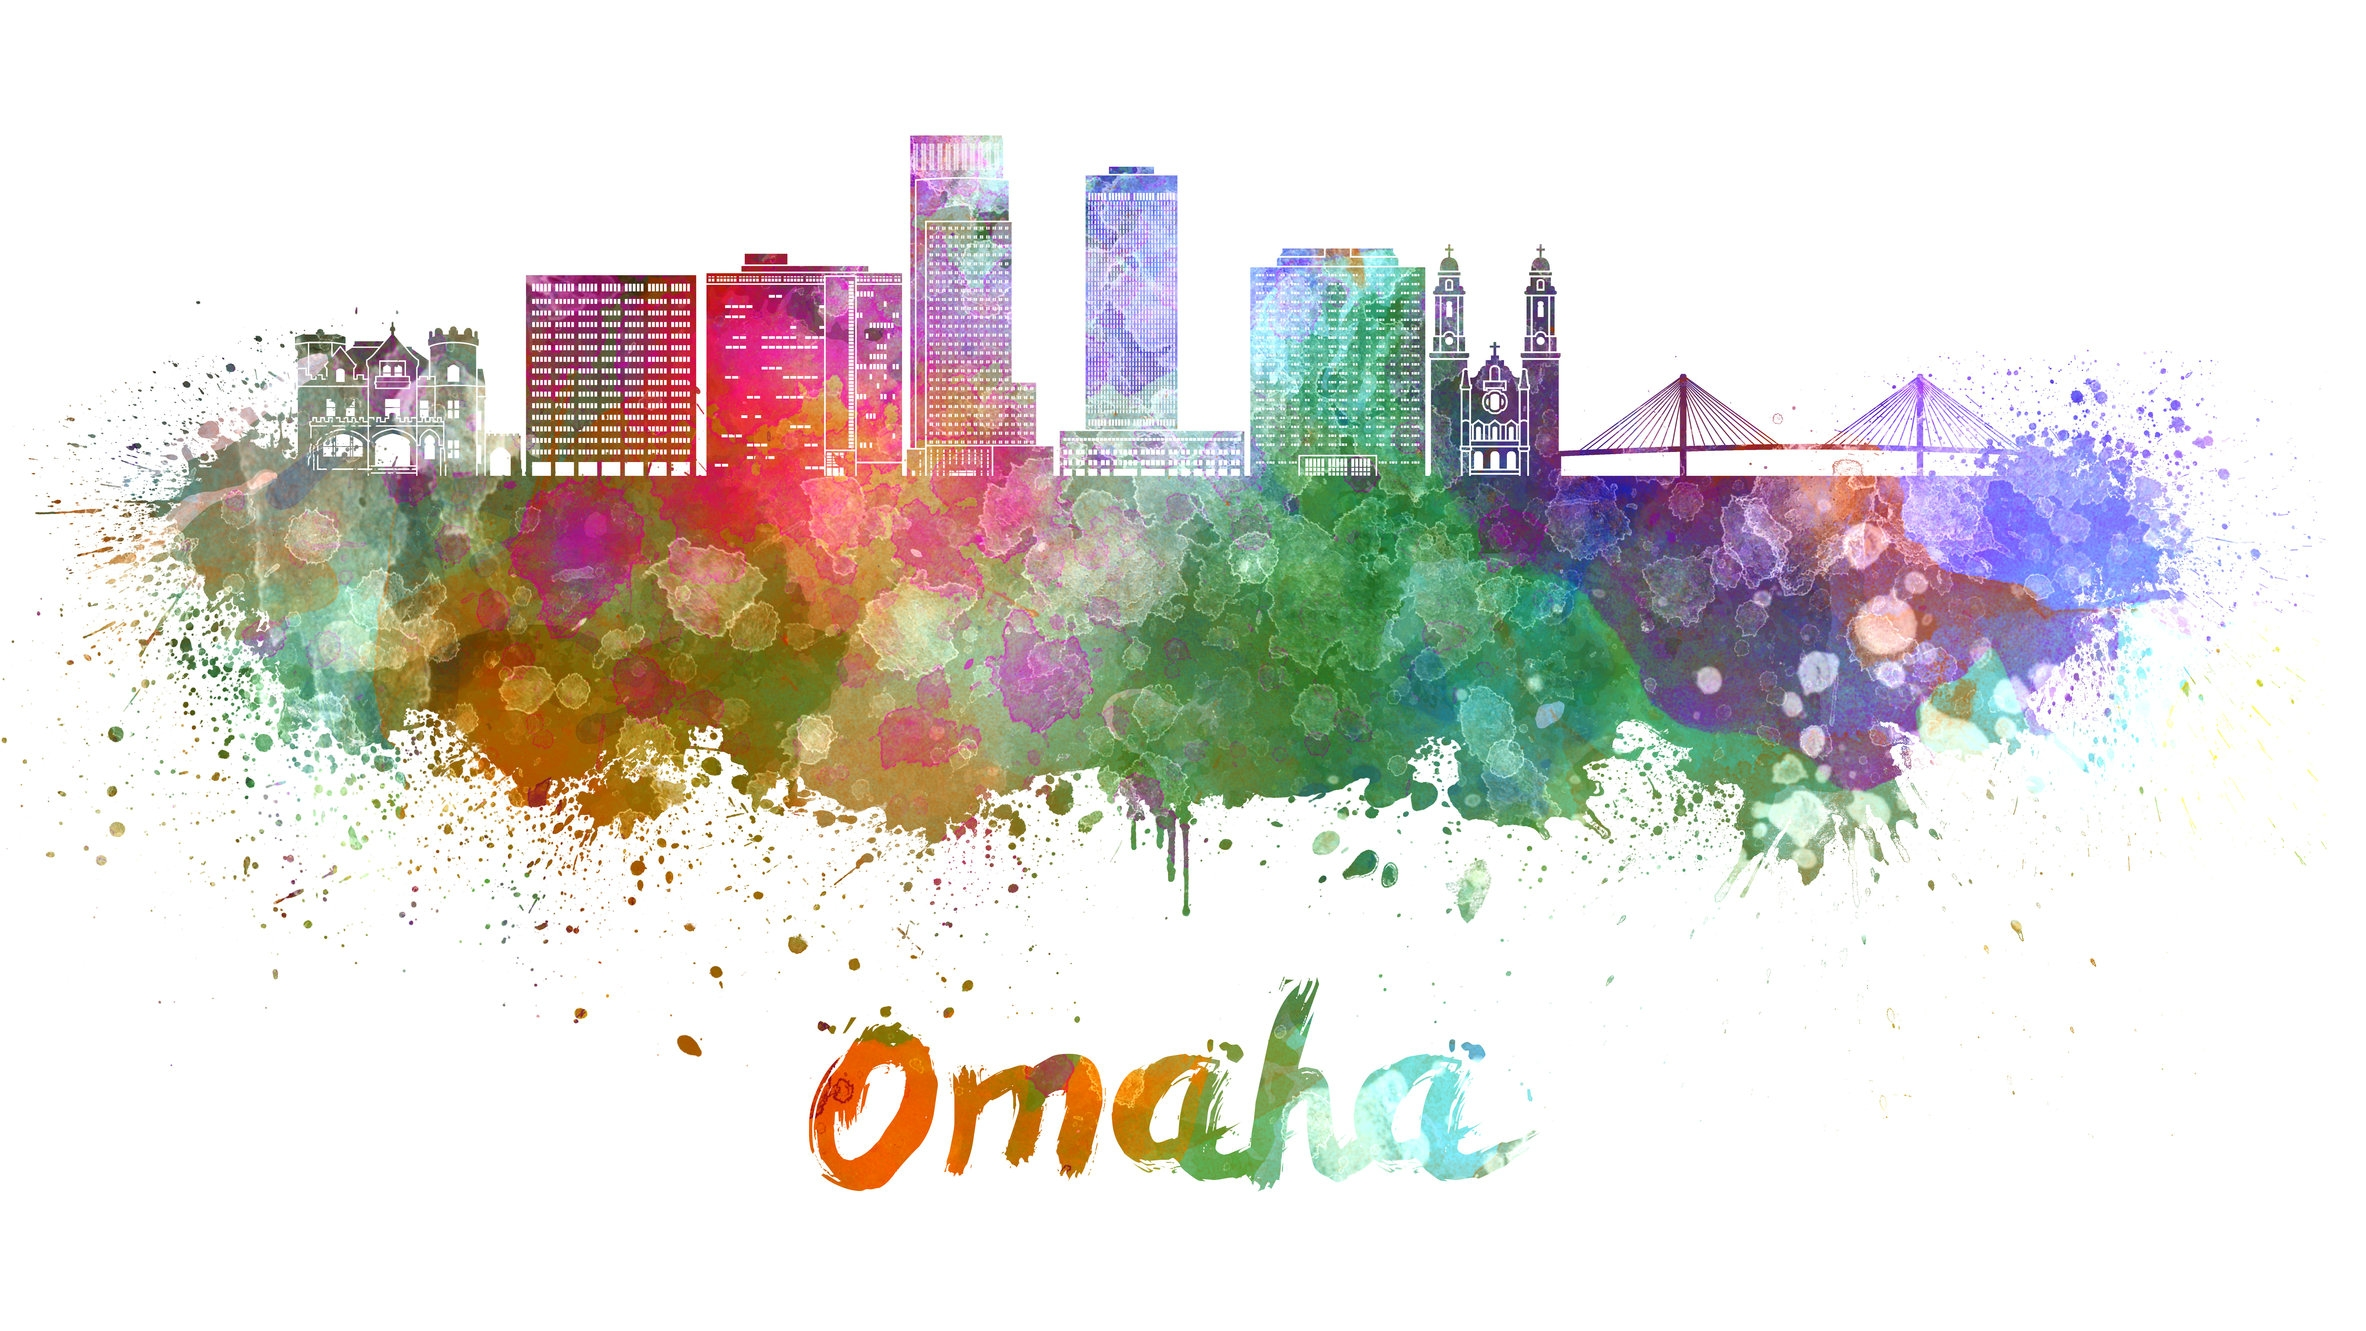 Omaha skyline.jpeg